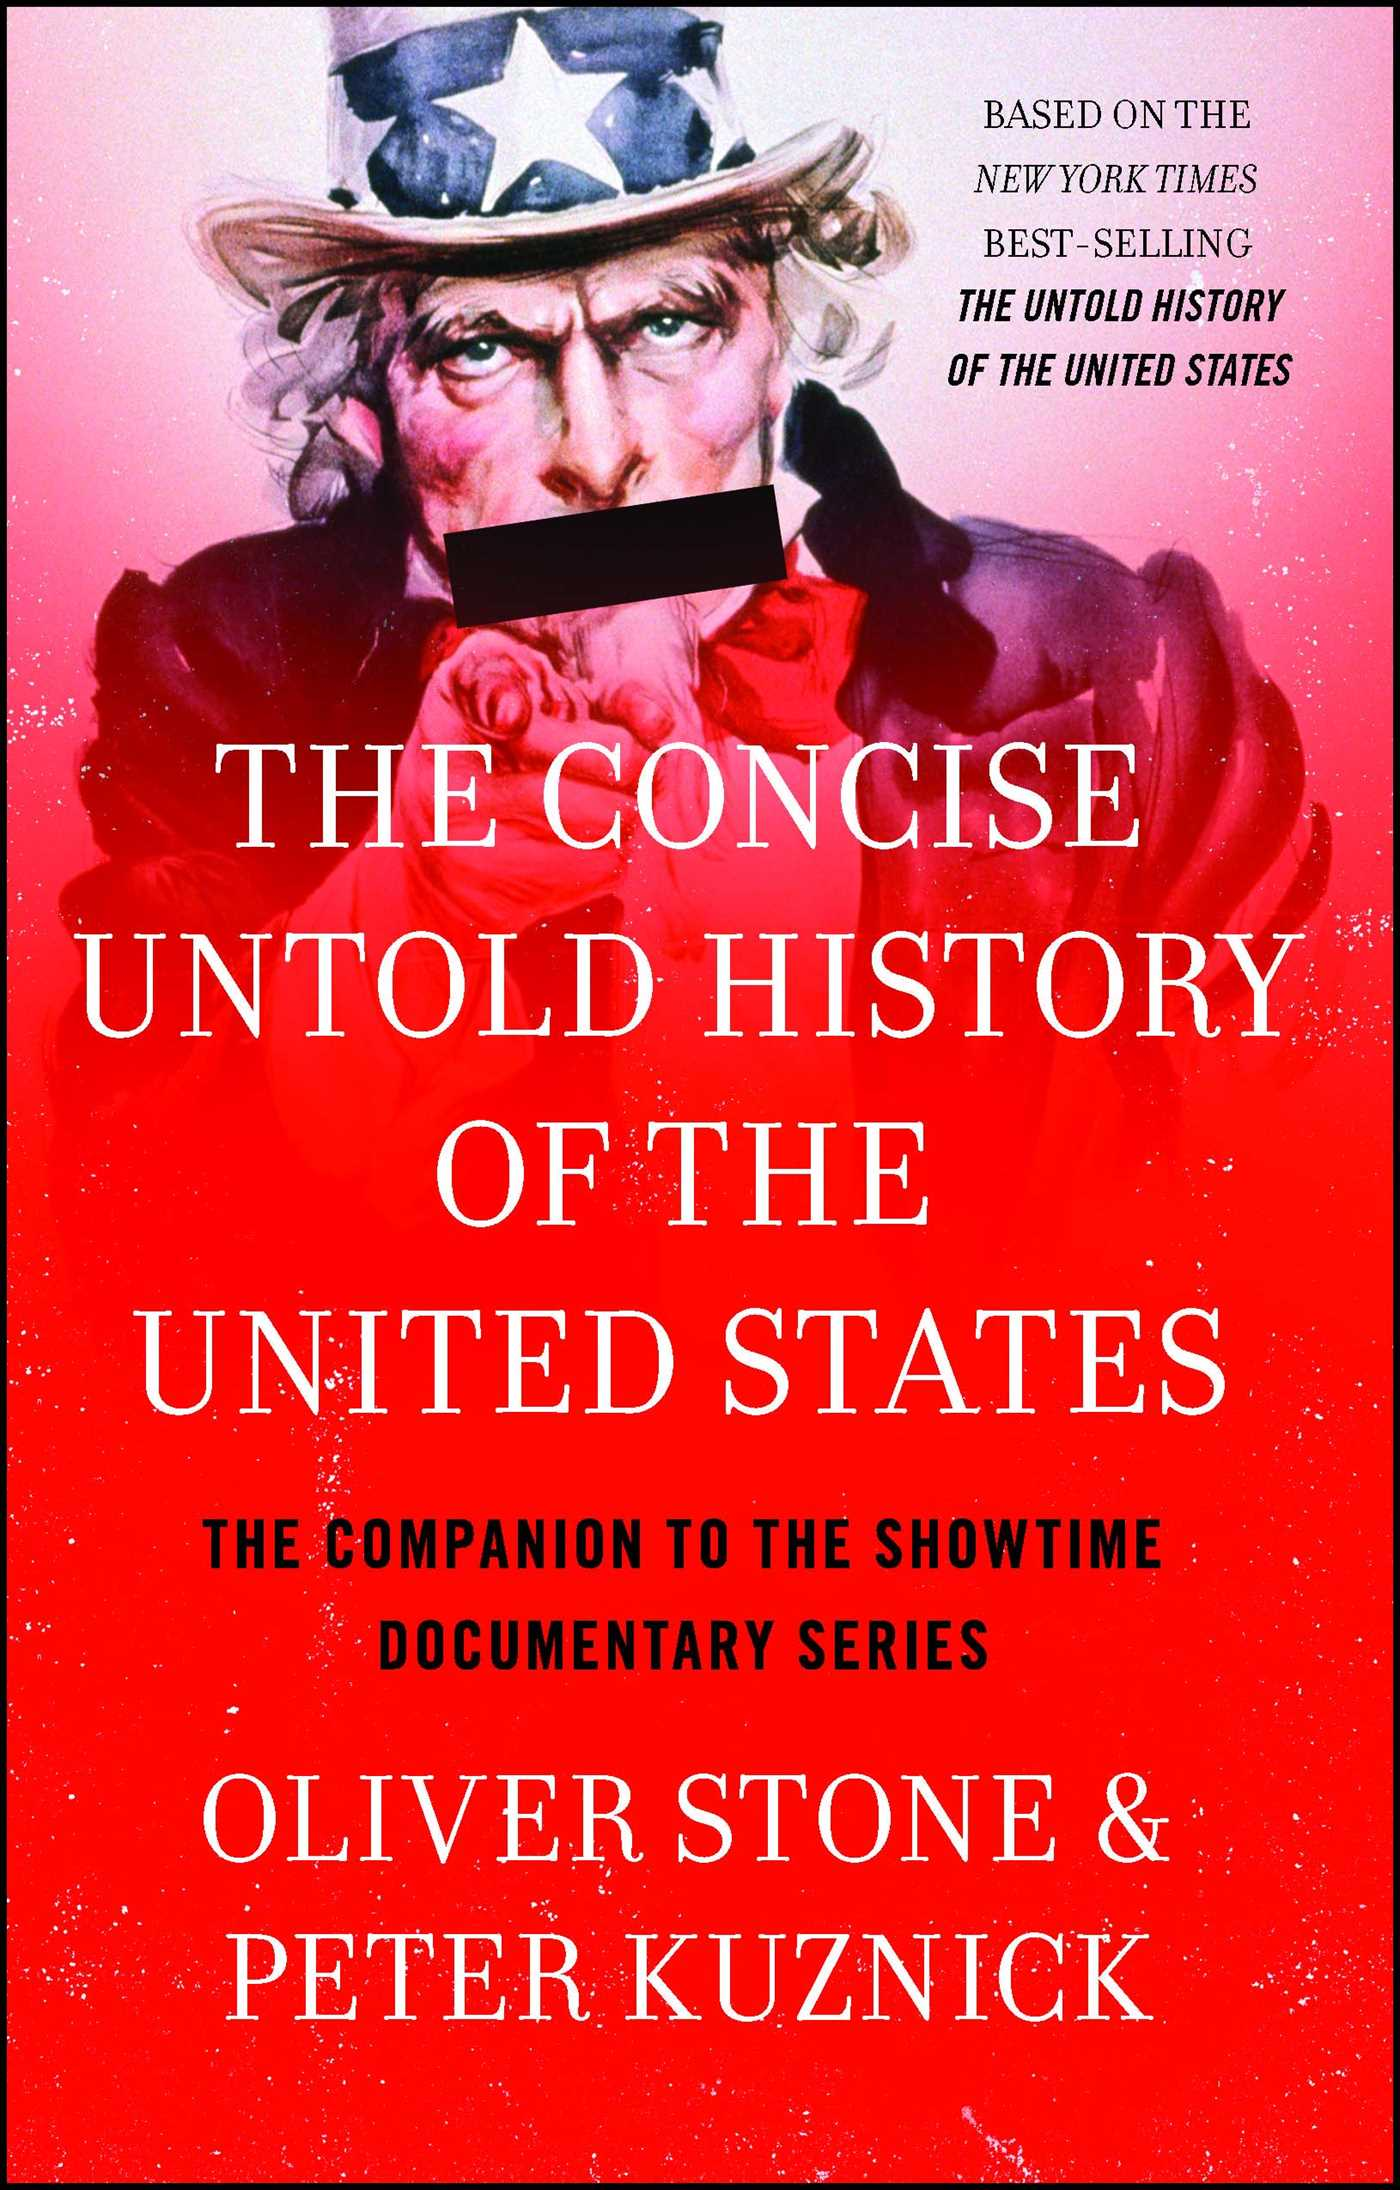 The concise untold history of the united states 9781476791661 hr